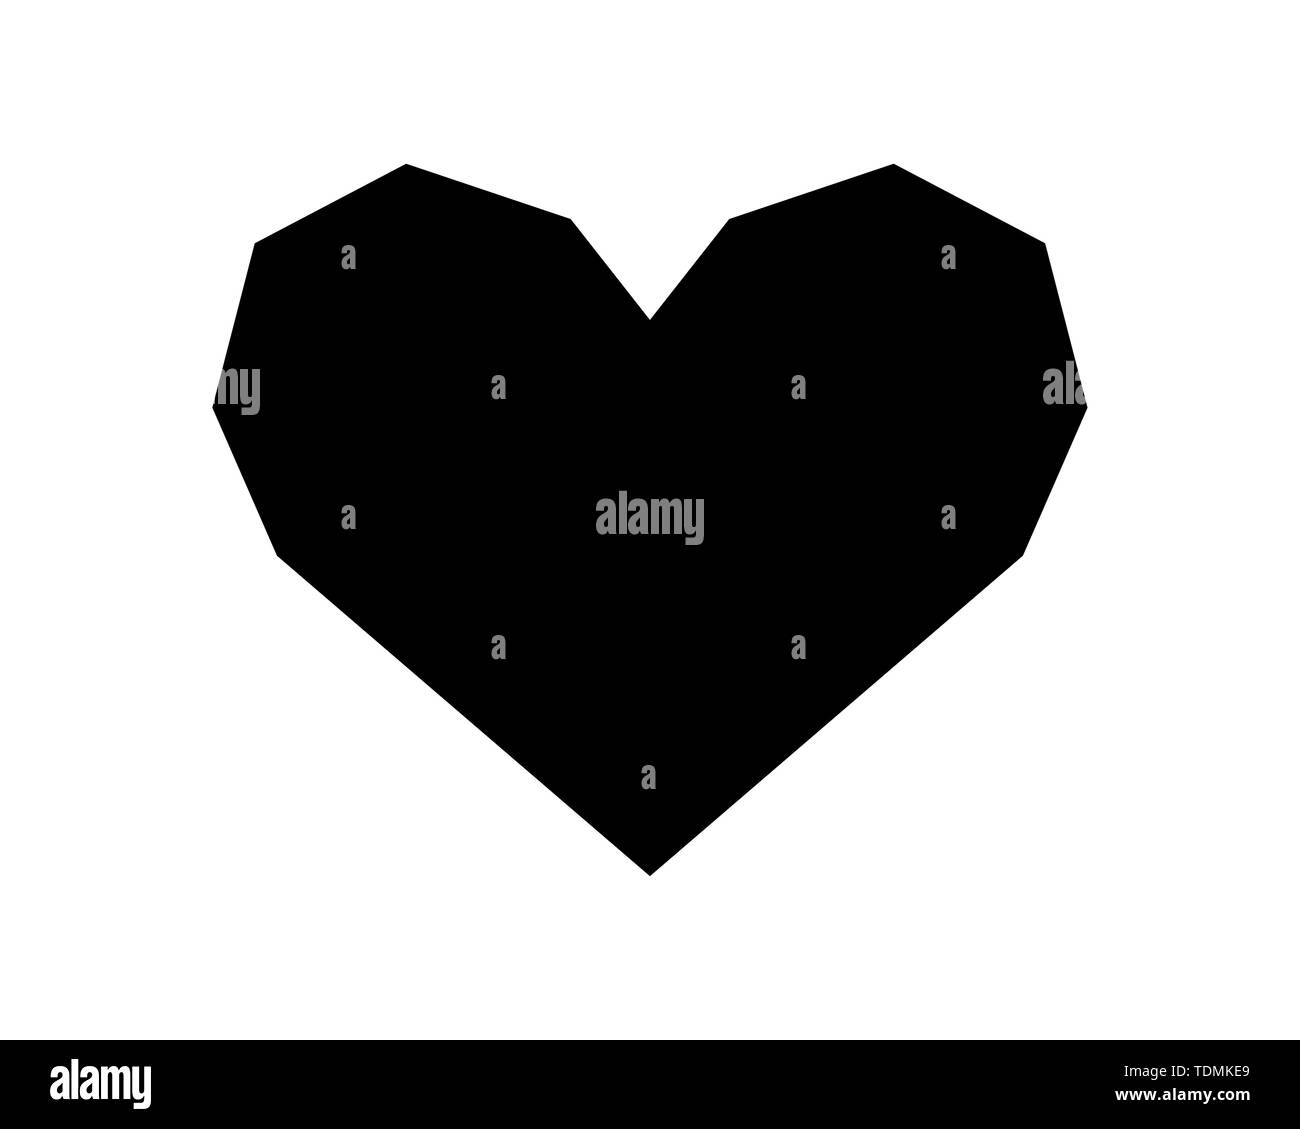 Love heart vector icon black silhouette isolated on white background. - Stock Image